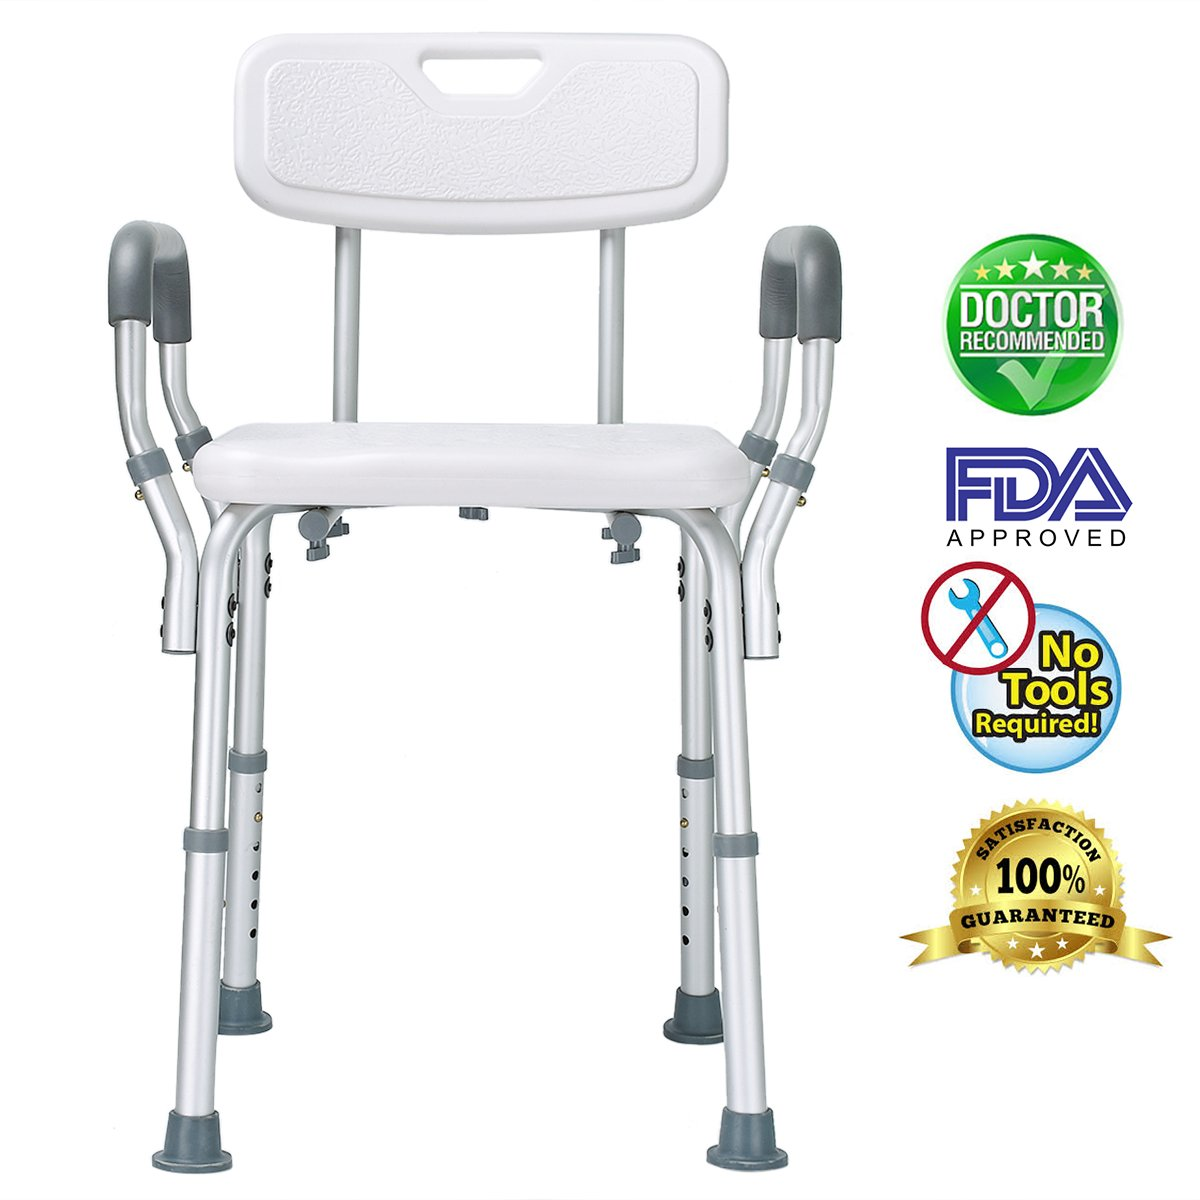 Health Line Tool-Free Assembly Shower Chair Bath Bench Stool Adjustable Height with Removable Back and Arms & Non-Slip Feet - w/Bonus Loofah Back Scrubber by HEALTH LINE MASSAGE PRODUCTS (Image #2)